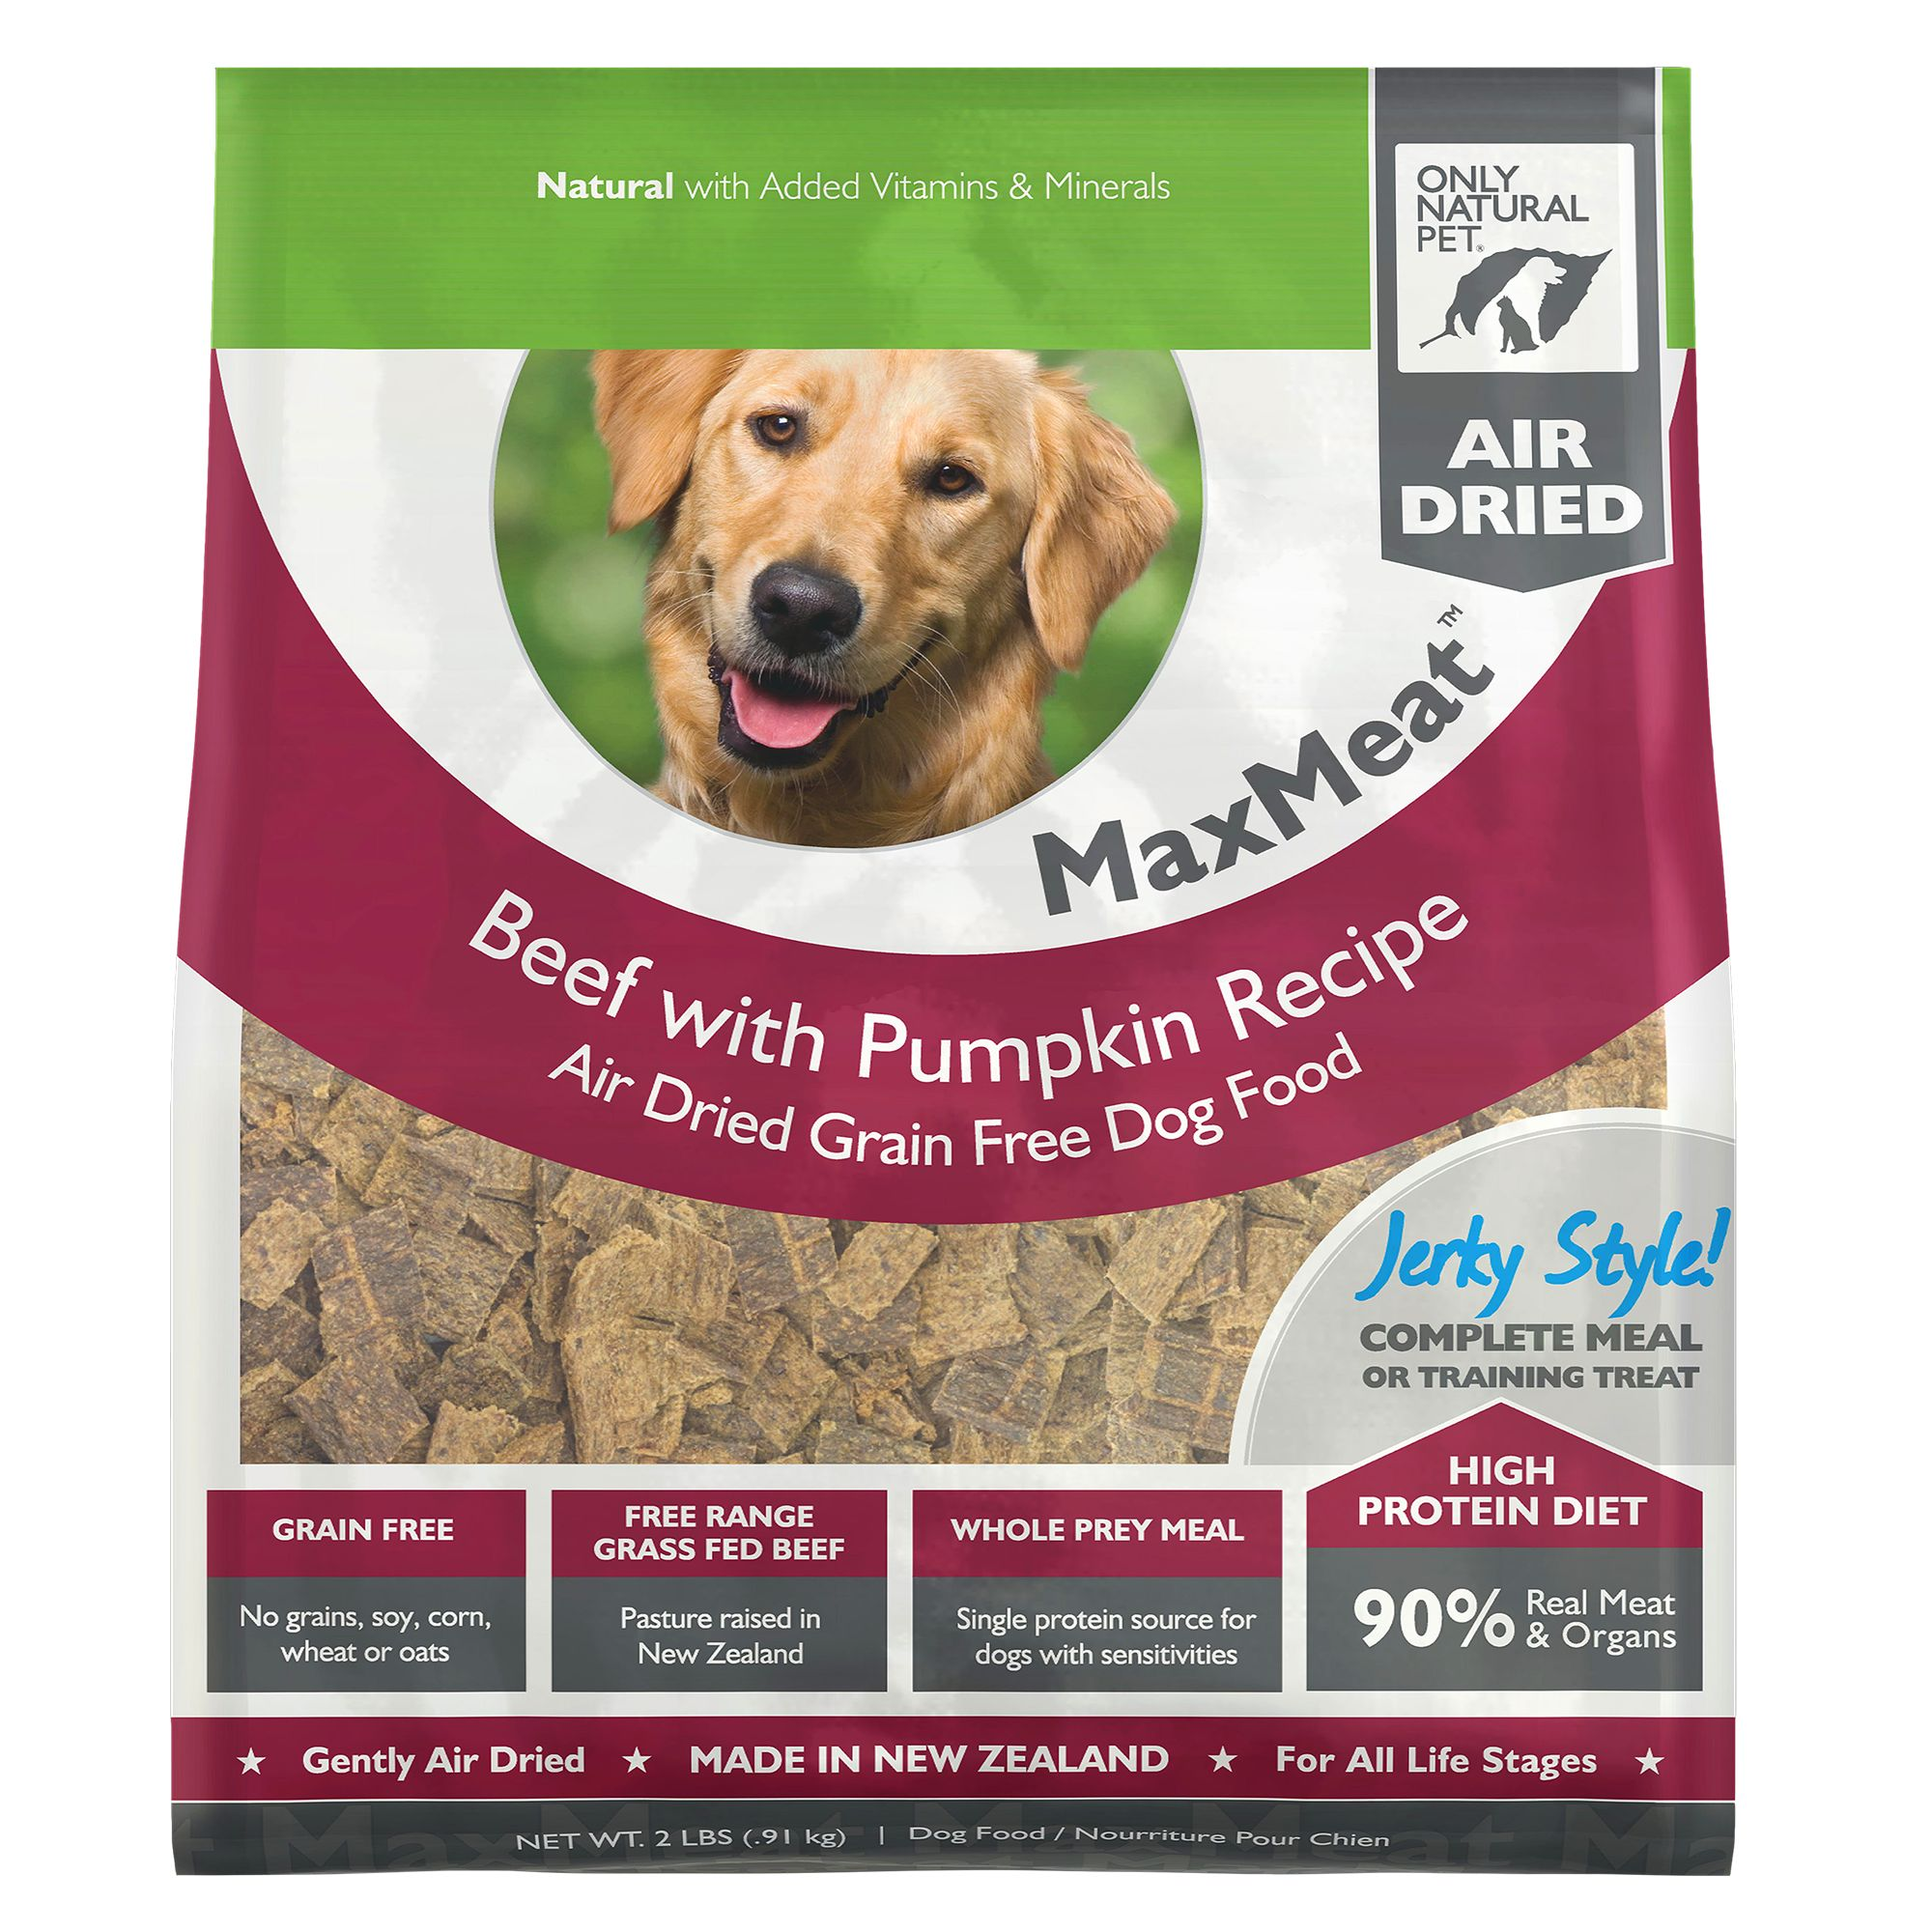 Only Fitting Pet MaxMeat Dog Food - Grain Free, Air Dried, Beef size: 2 Lb, Beef with Pumpkin & Parsley, Soft Jerky-Style Chew, All Life Stages